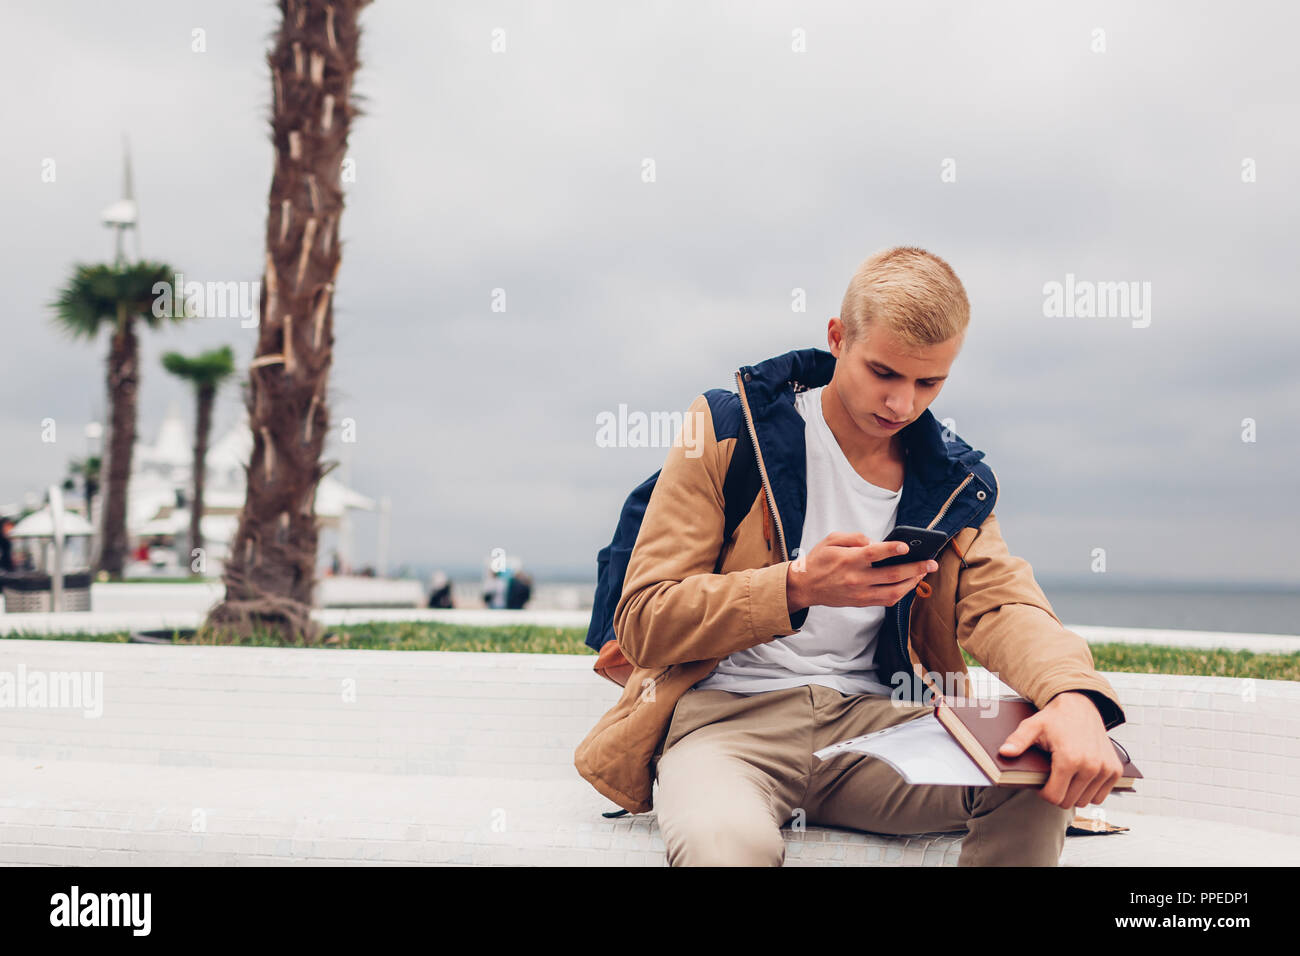 College student sitting on bench by sea using smartphone and holding book on Langeron beach in Odessa. Young man with backpack networking - Stock Image